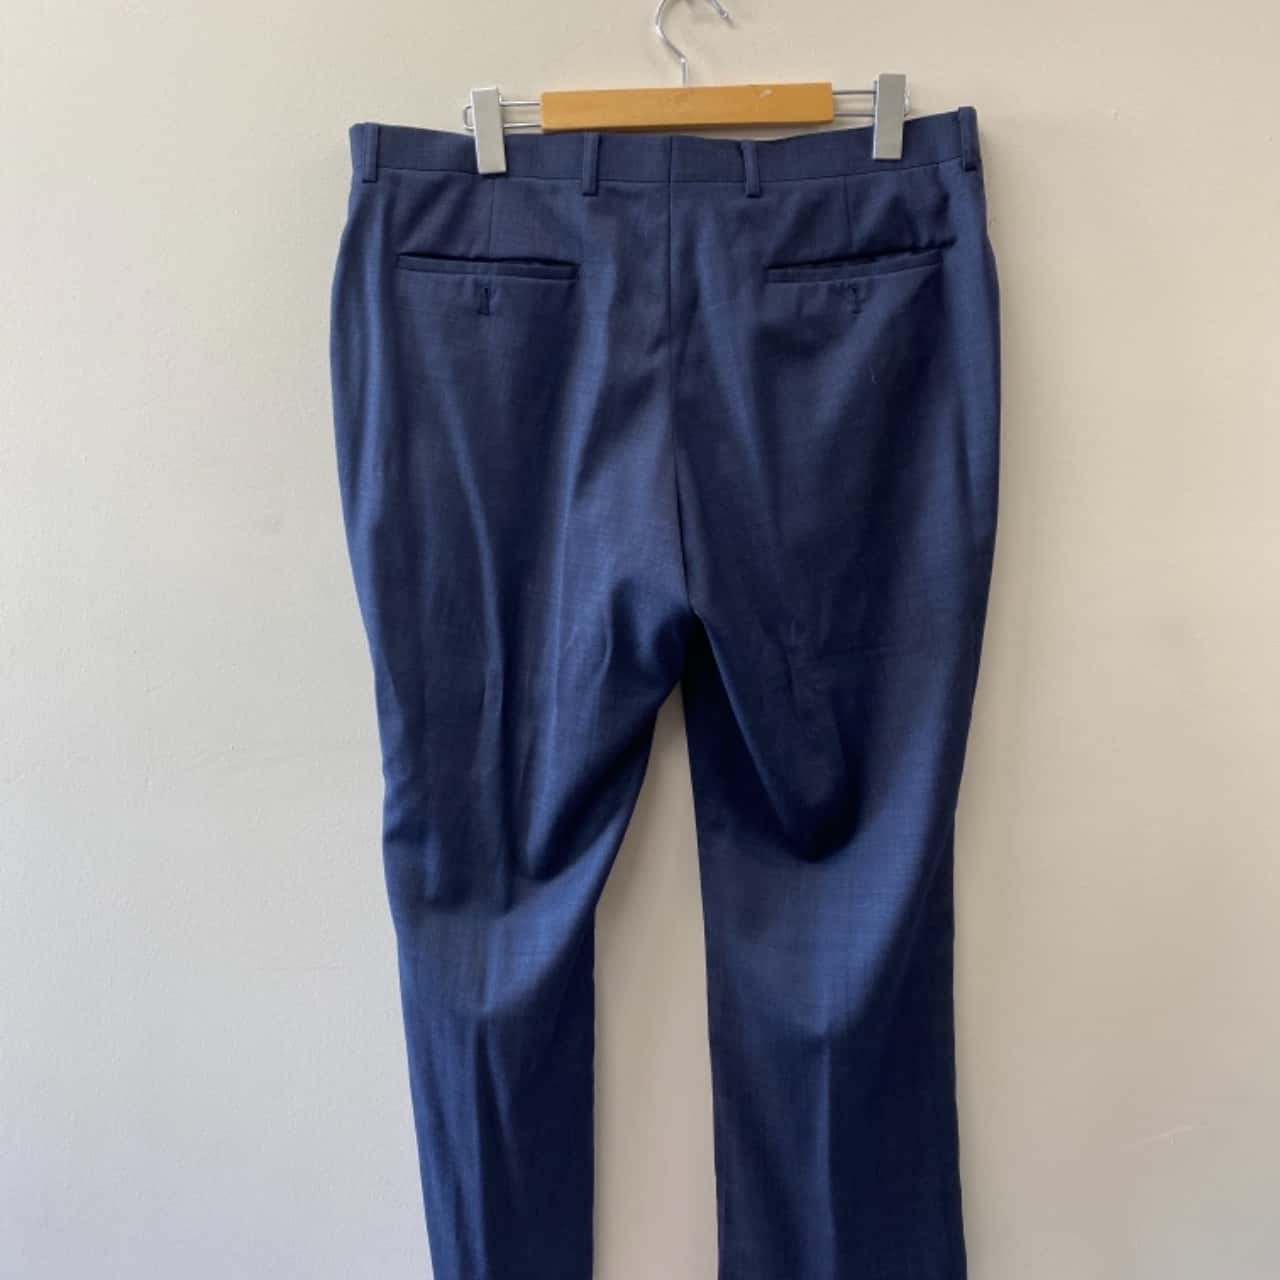 ** REDUCED ** Oxford Mens Size 116 R/98 R Navy Blue